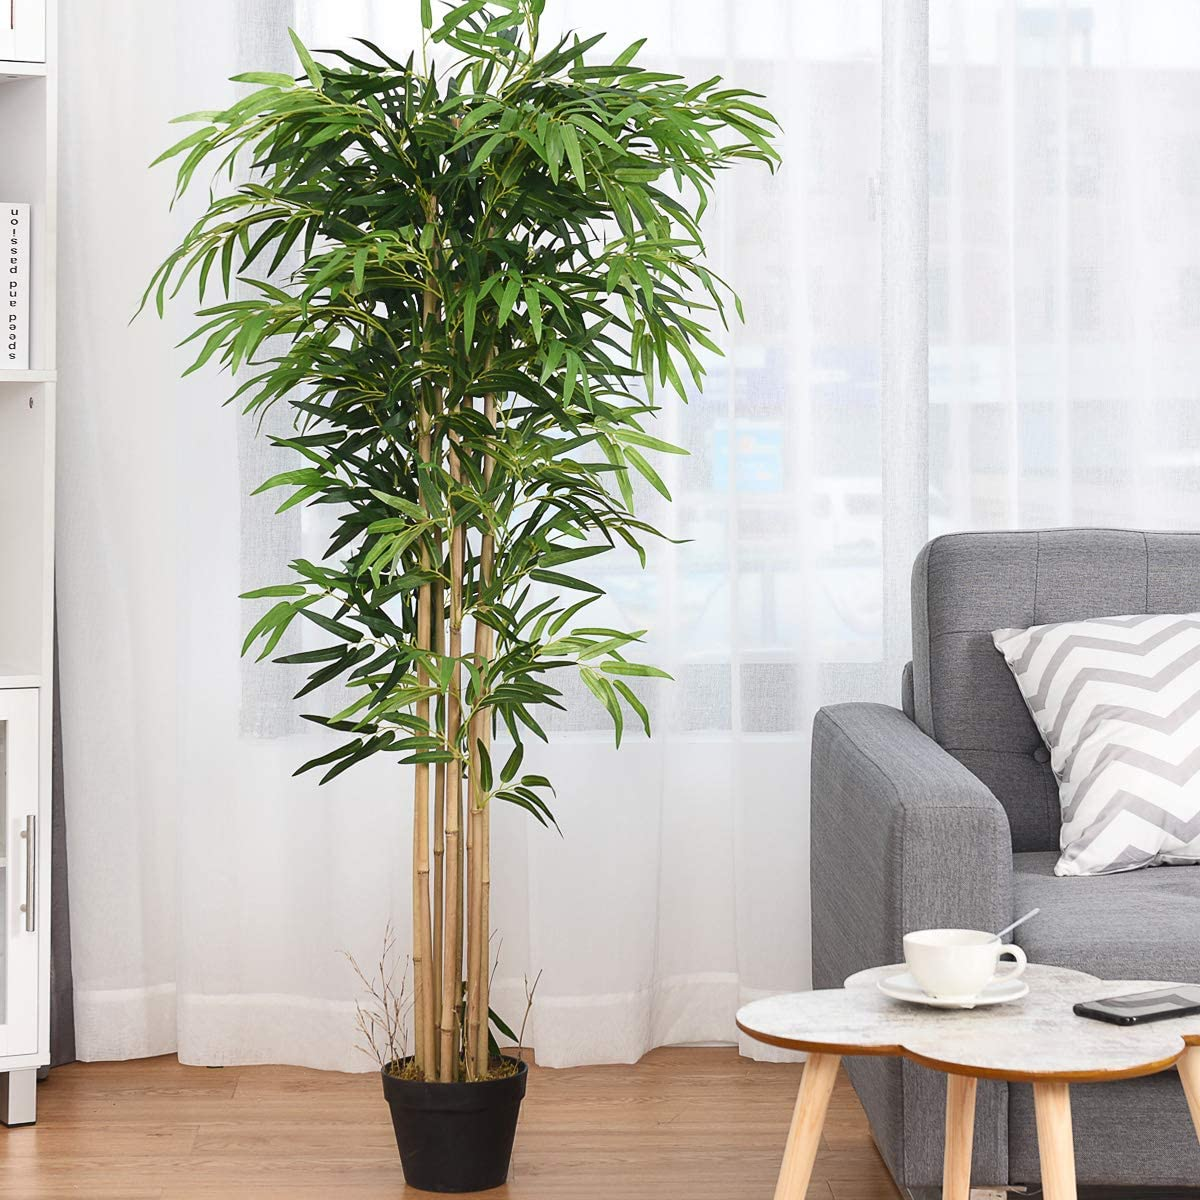 Amazon Com Bestcomfort 5 Feet Artificial Bamboo Silk Tree Decorative Indoor House Fake Plant Artificial Leafy Tree Faux Potted Indoor Floor Plant For Home Office Decor 5 Feet Kitchen Dining